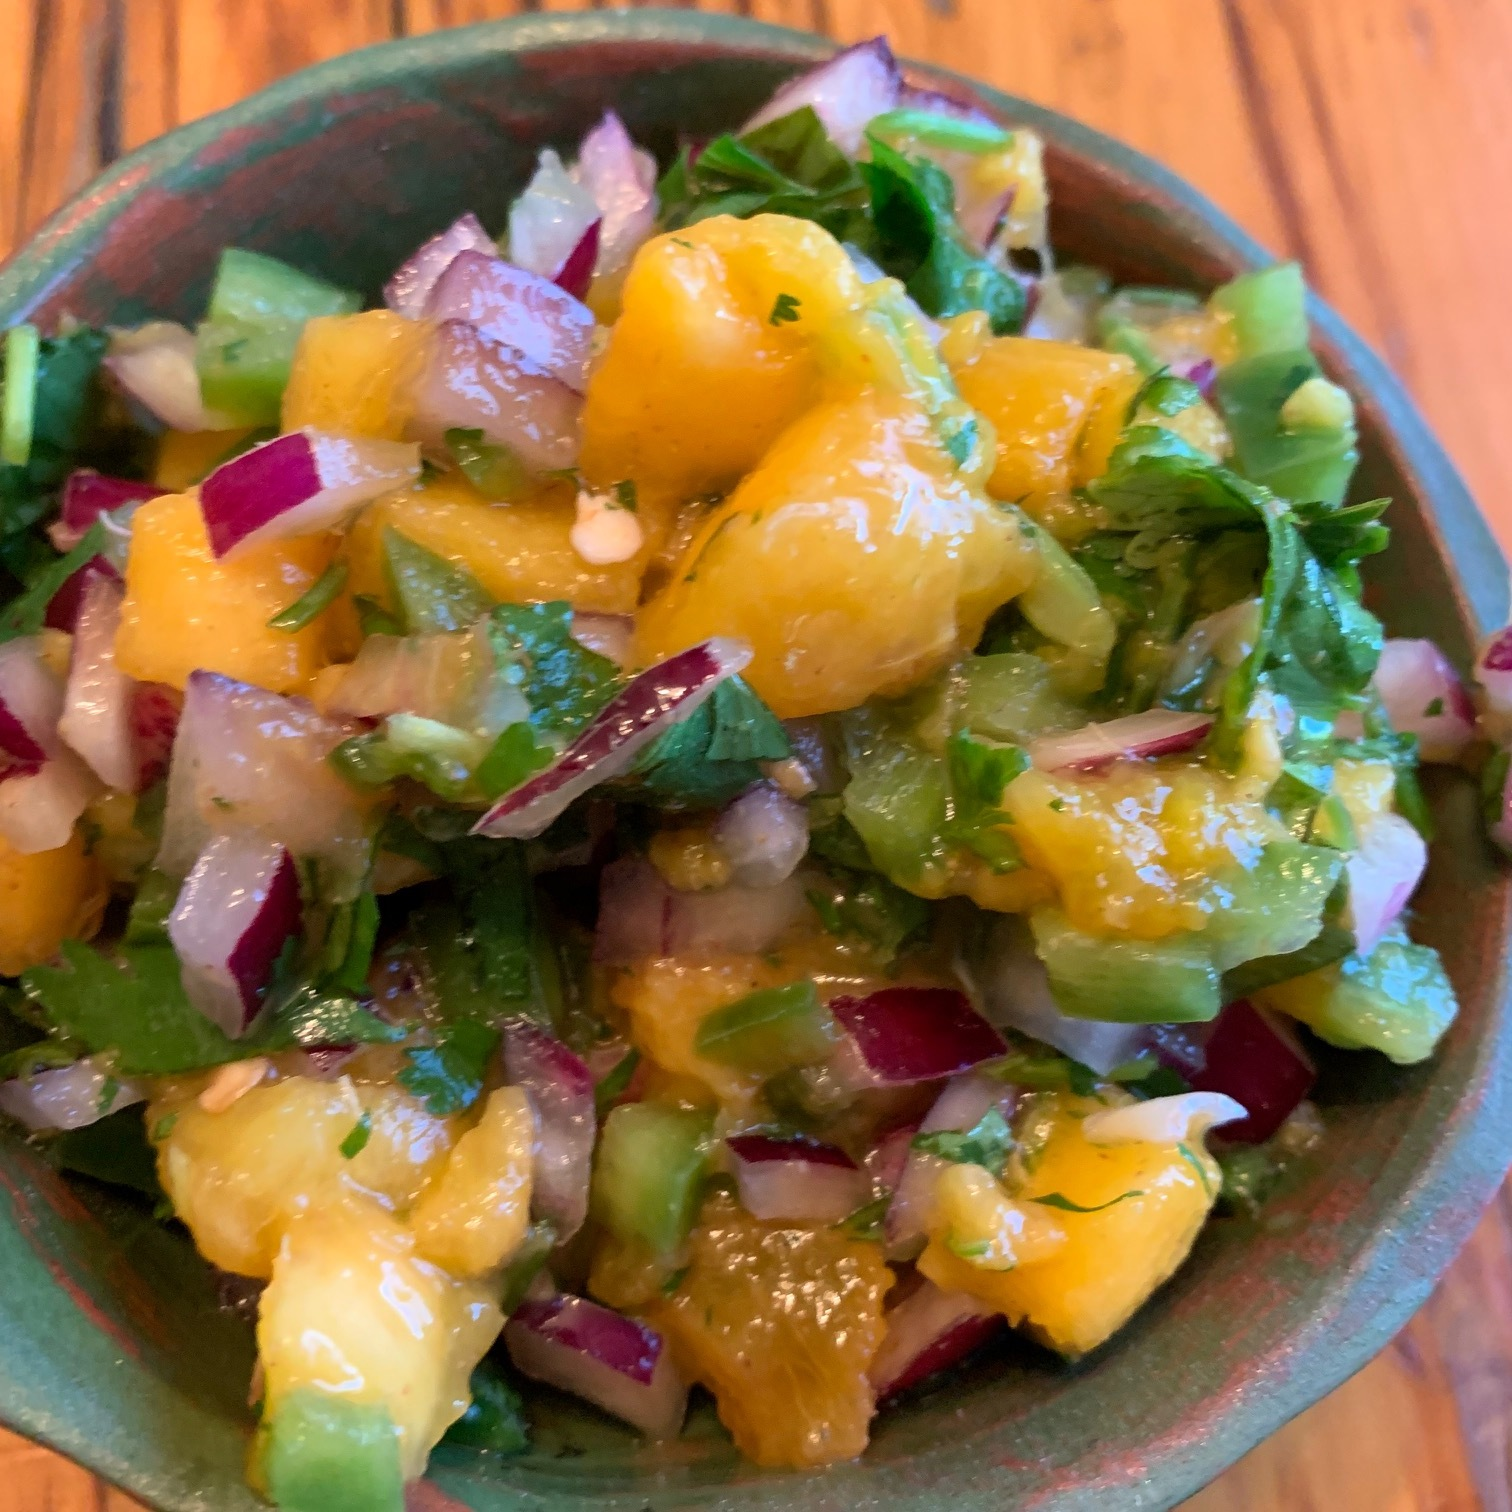 Fresh Peach salsa is sweet and spicy  - serve with grilled fish , tacos or chips -  GF + vegan